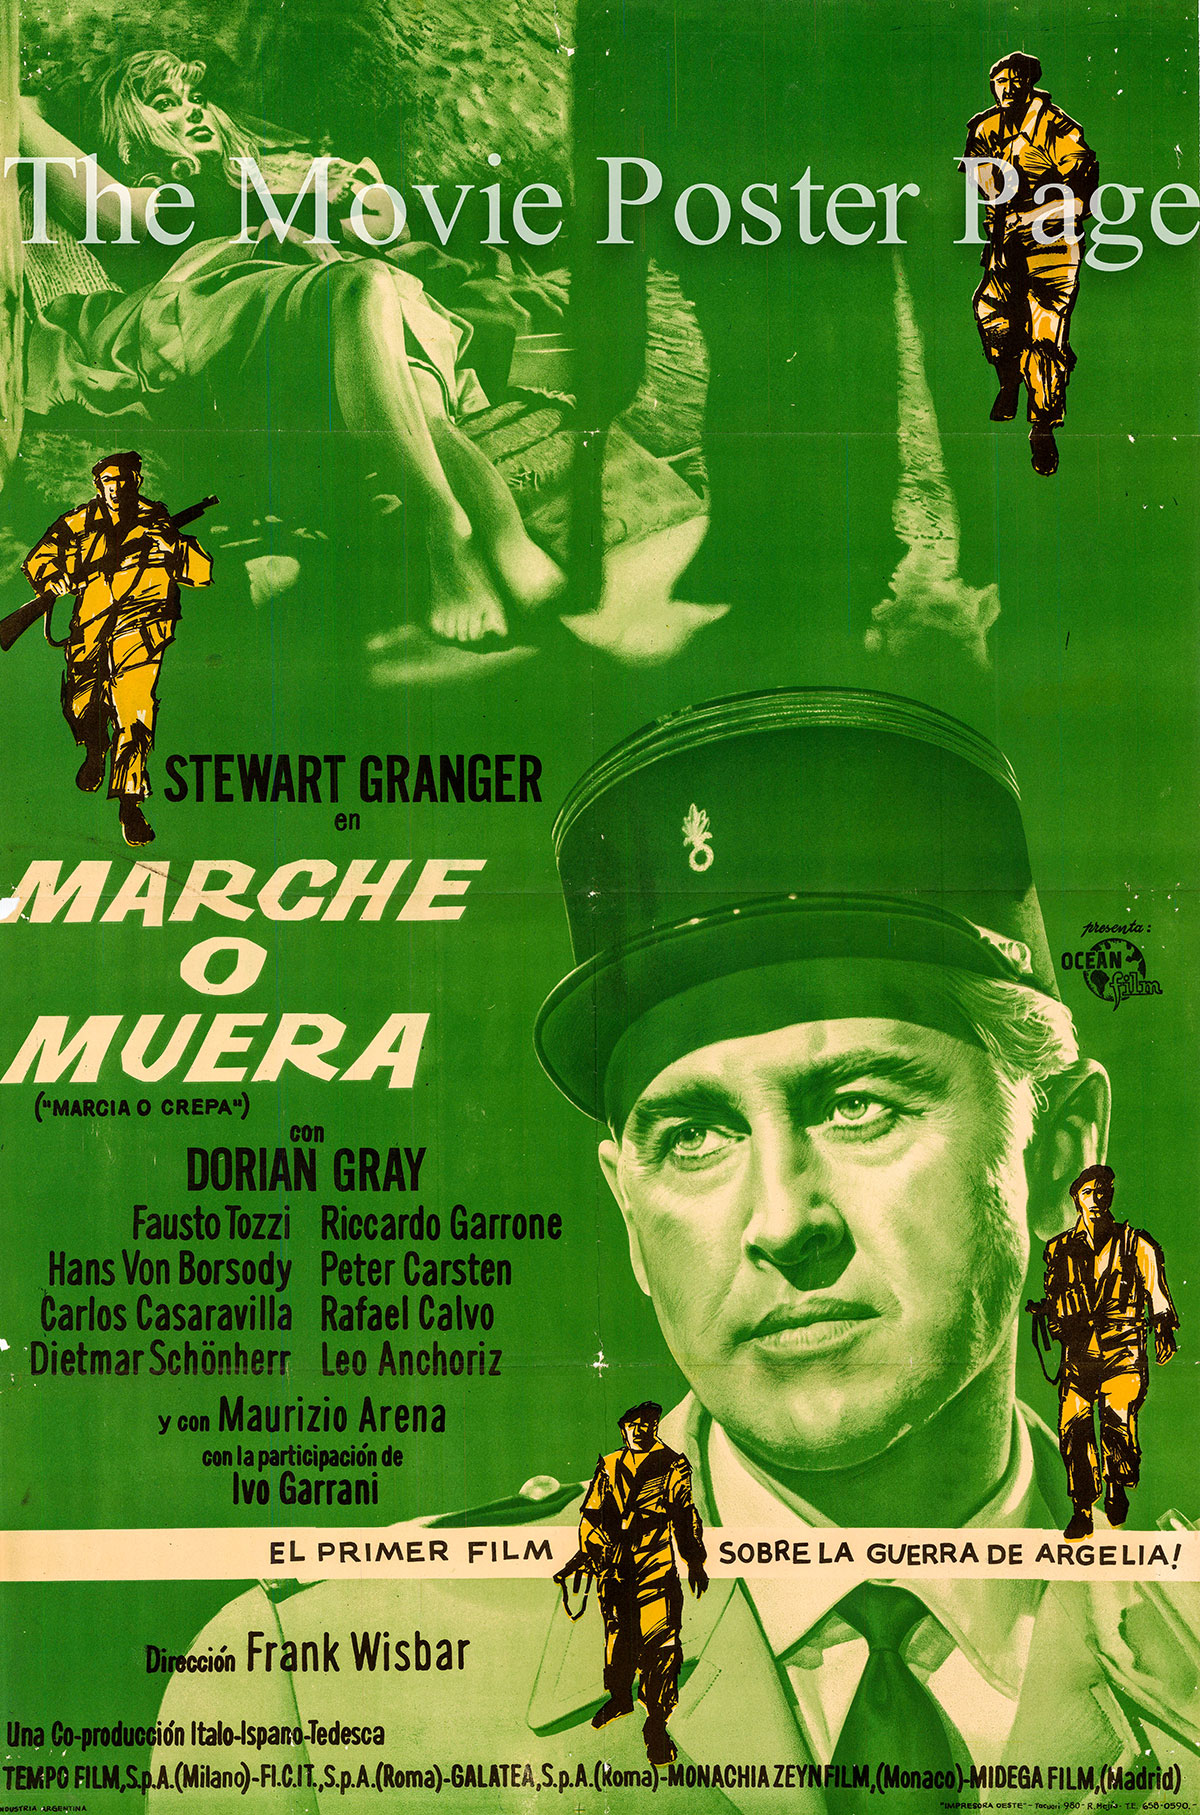 Pictured is an Argentine one-sheet poster for the 1962 Frank Wiasbar film Commando starring Stewart Granger.